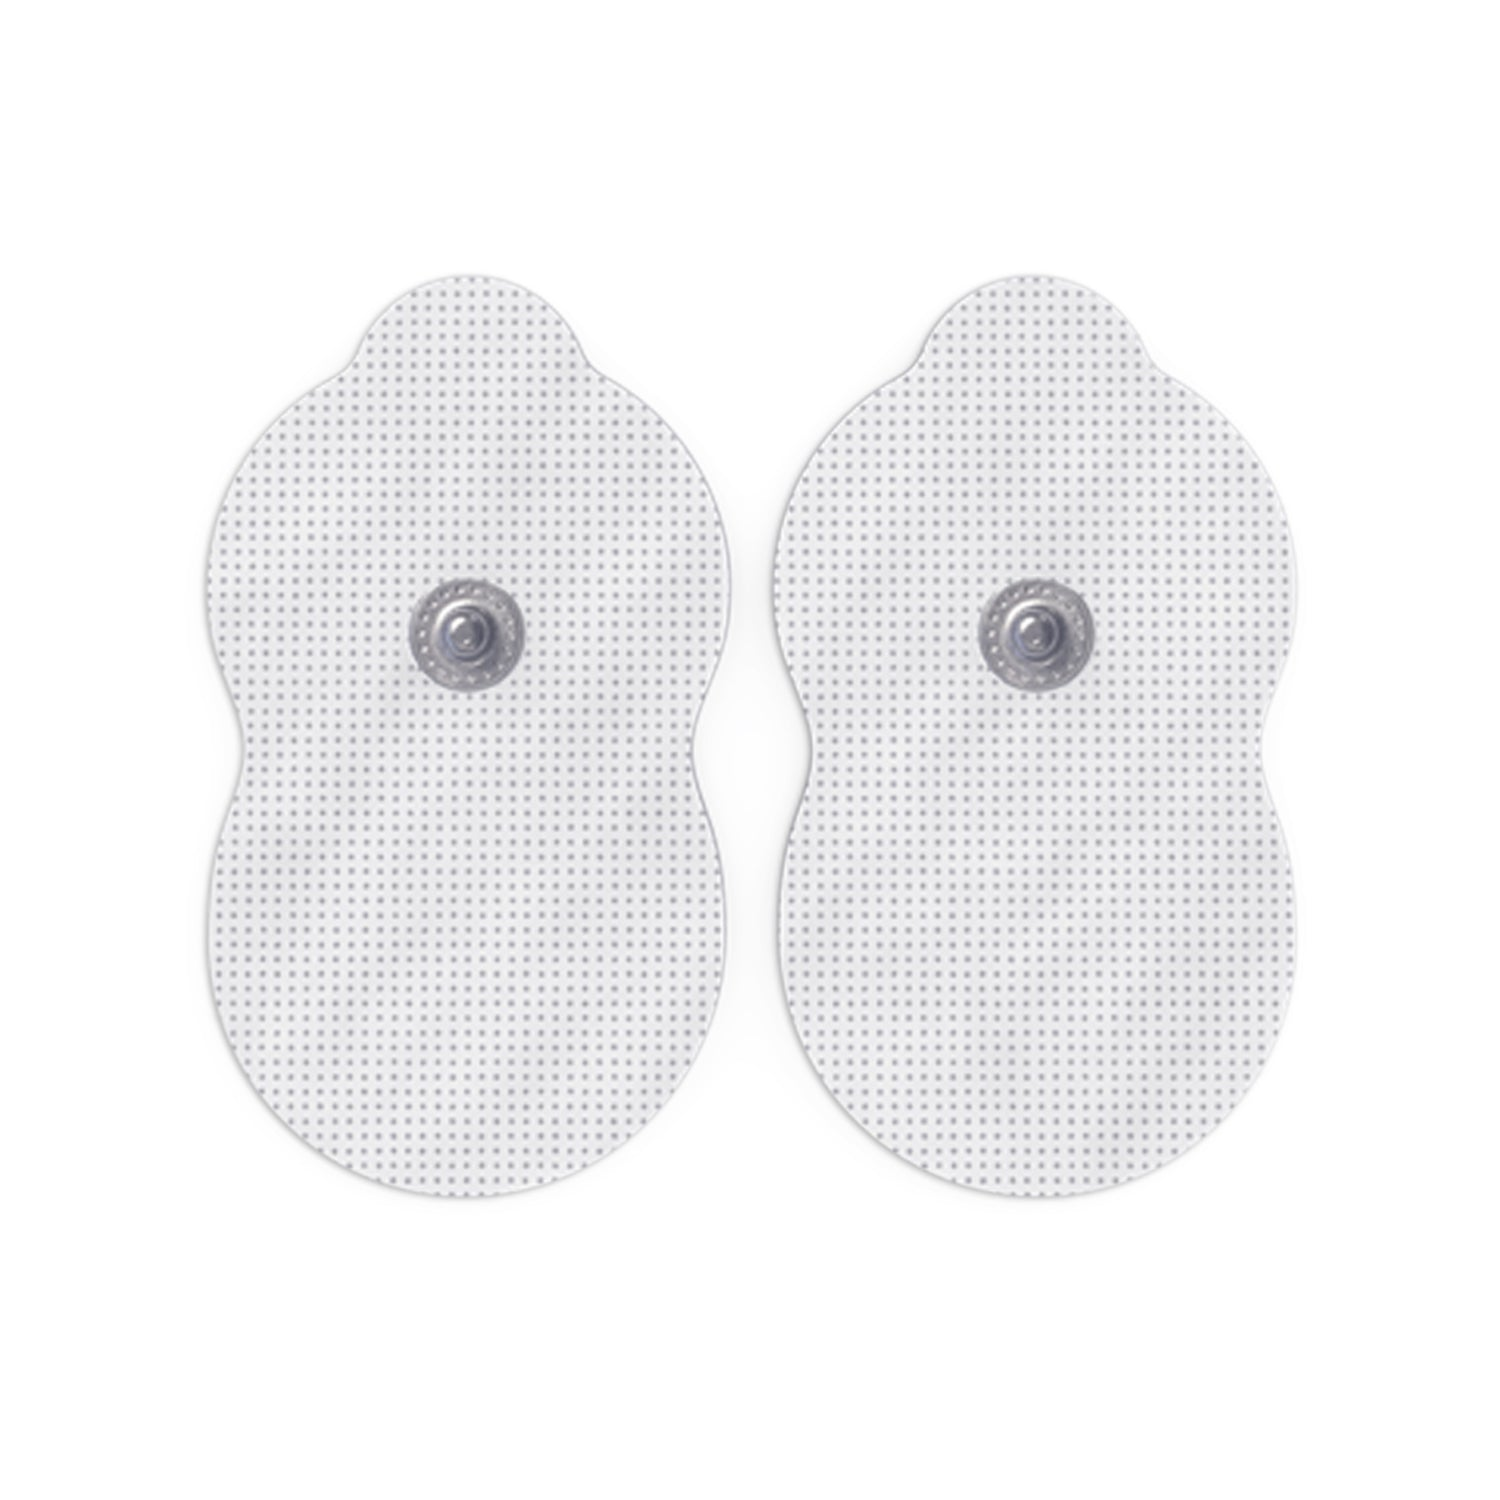 5 Pairs (10 Pcs) White Pair of Snap-On Large Gourd-Shaped Electrode Patches Pads - HealthmateForever.com